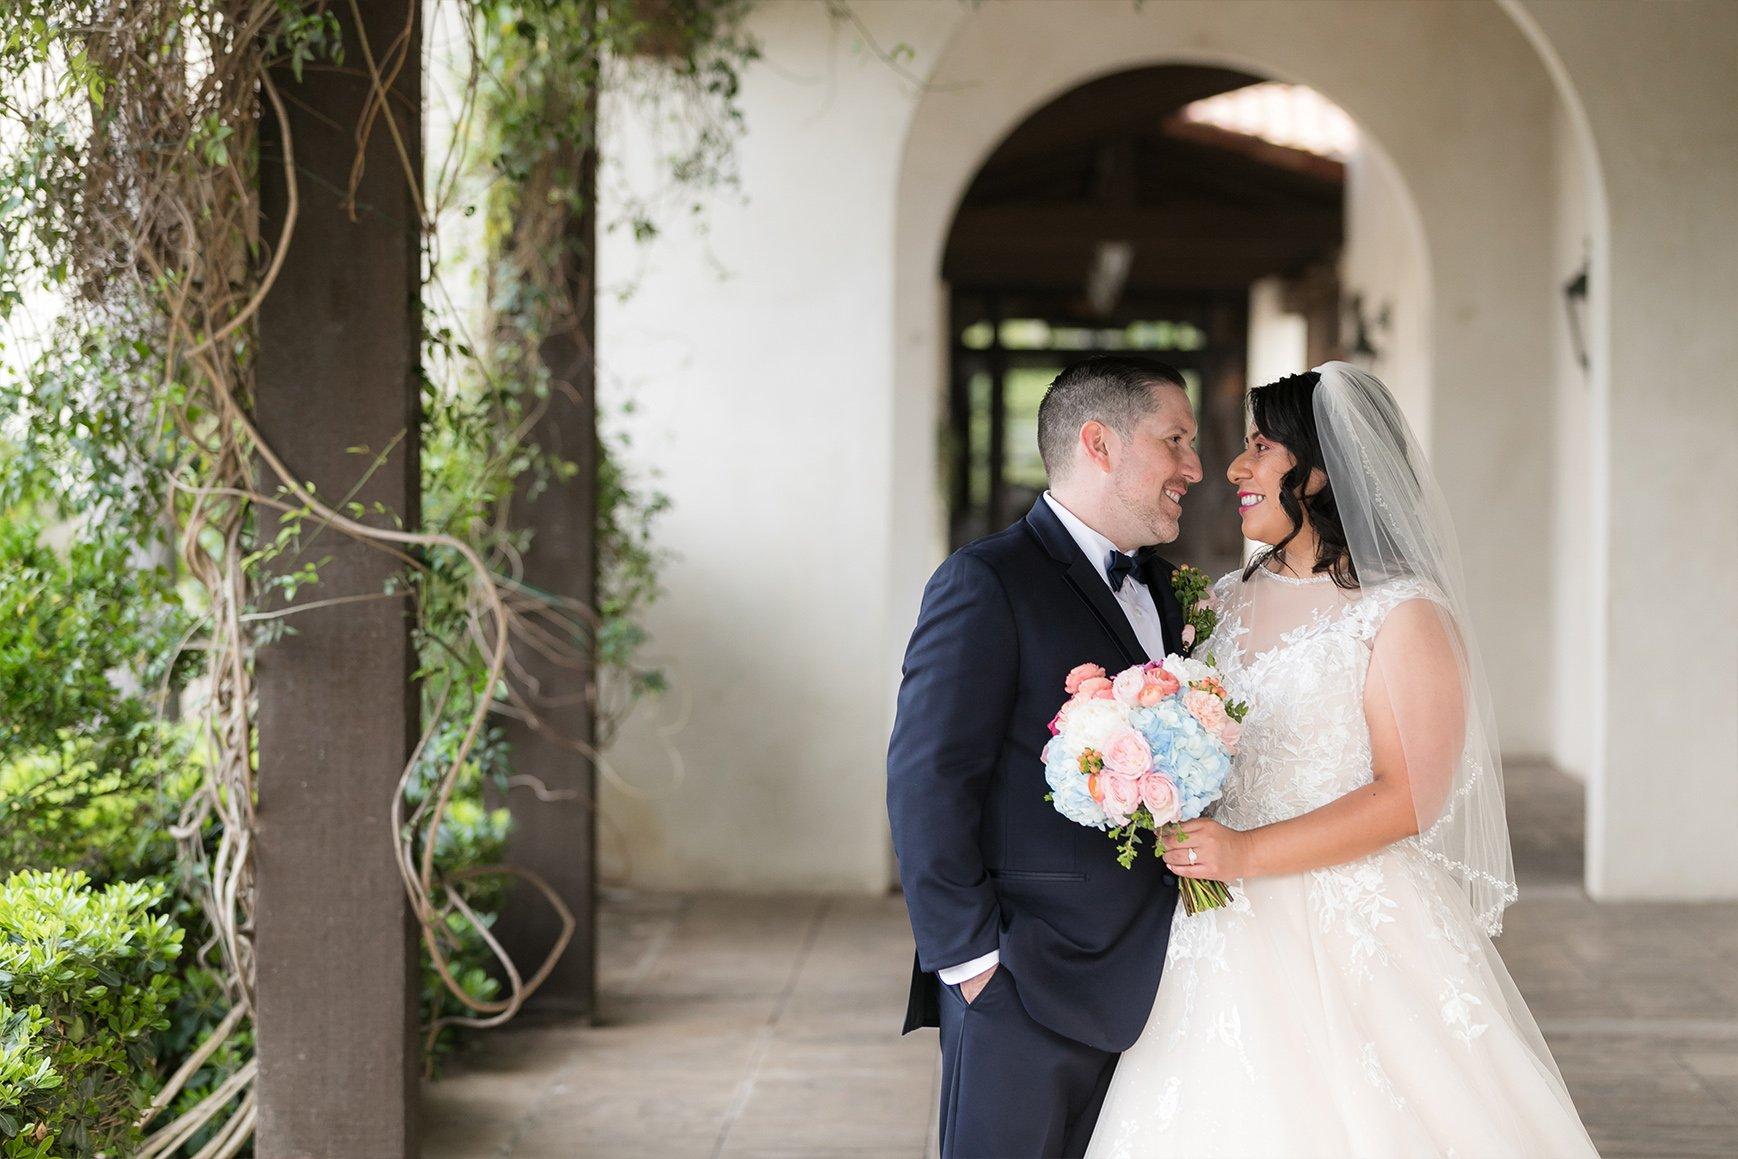 Romantic Bride and Groom - Fallbrook - Fallbrook, California - San Diego County - Wedgewood Weddings